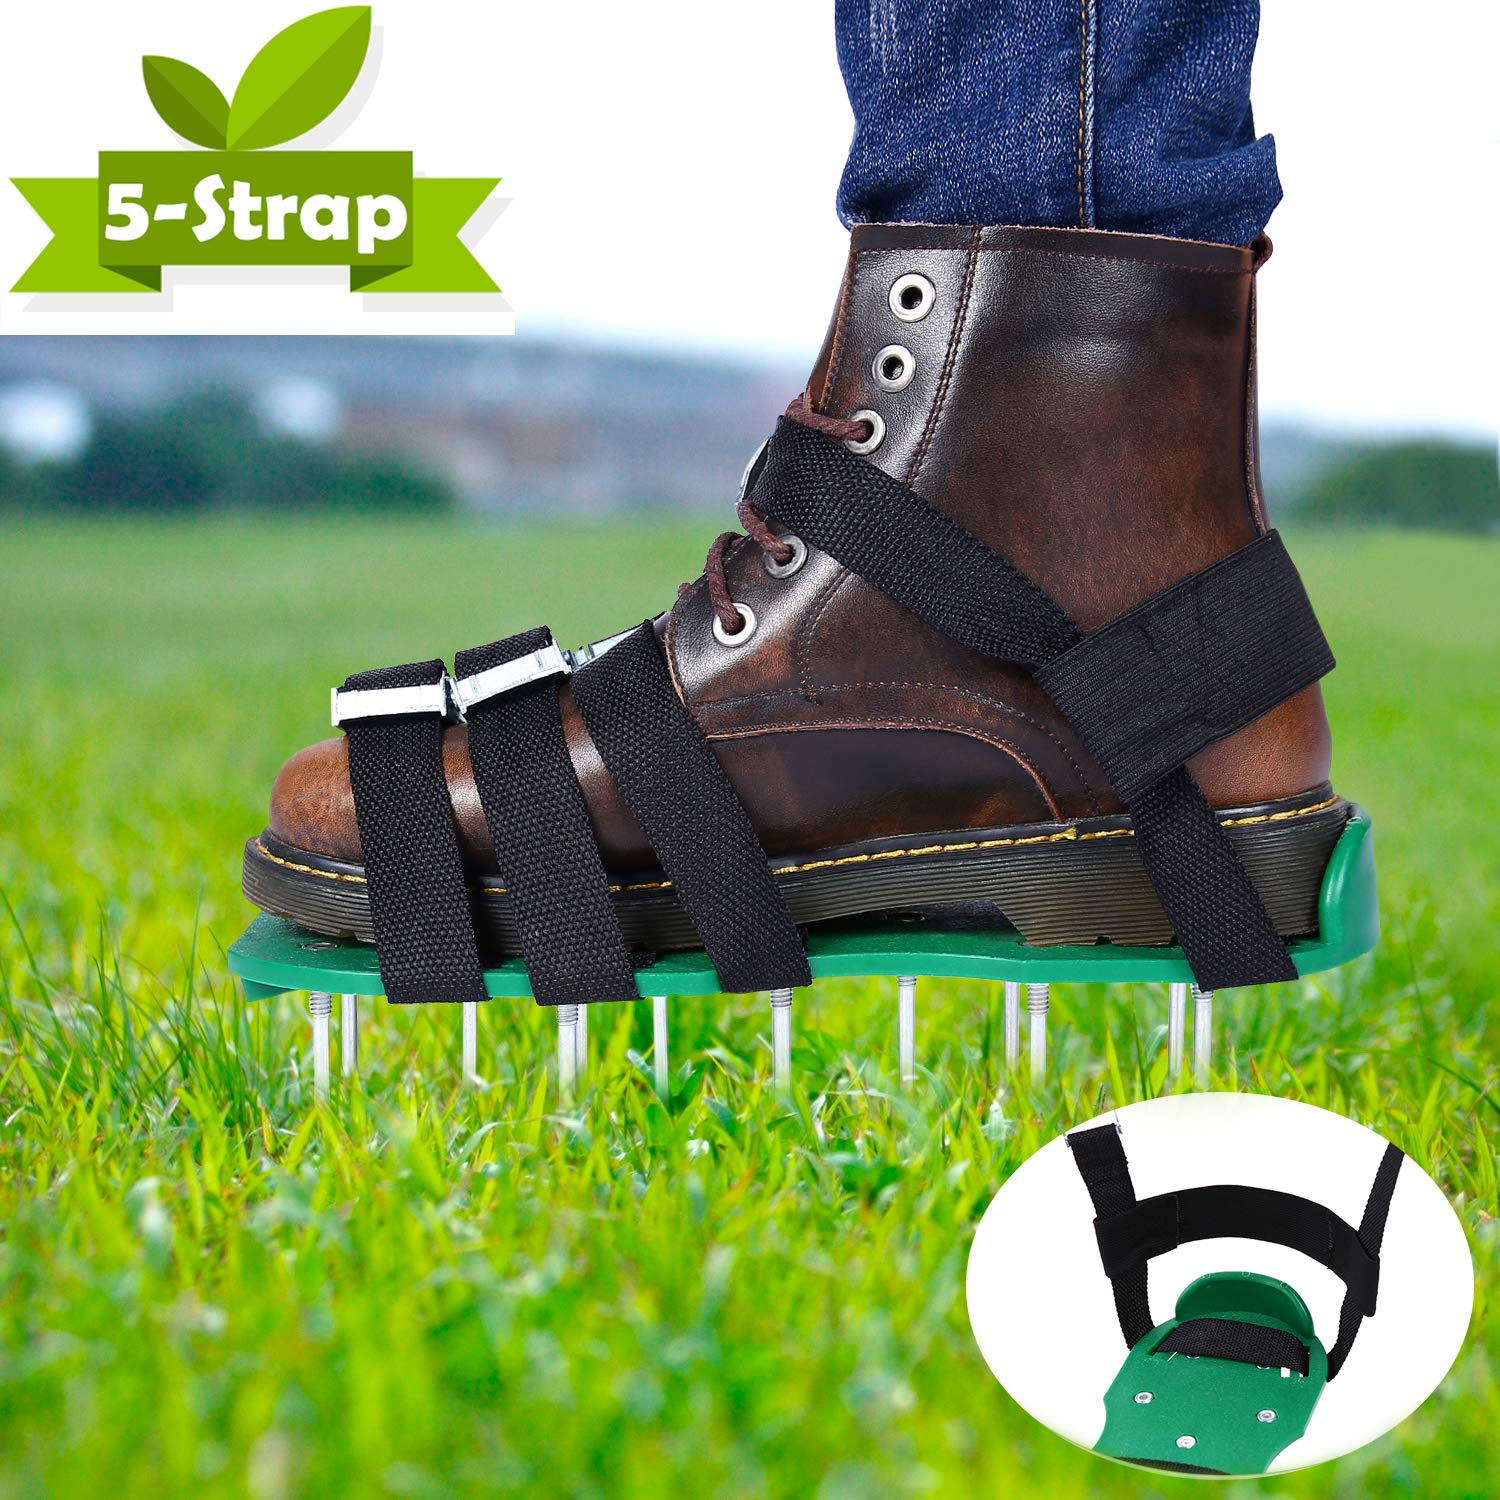 Ohuhu Lawn Aerator Shoes, Free-Installation Heavy Duty Spiked Sandals, 4 x Adjustable Aluminium Alloy Buckles & 1 x Heal Elastic Band Unique Design Airators for Aerating Your Lawn Or Yard by Ohuhu